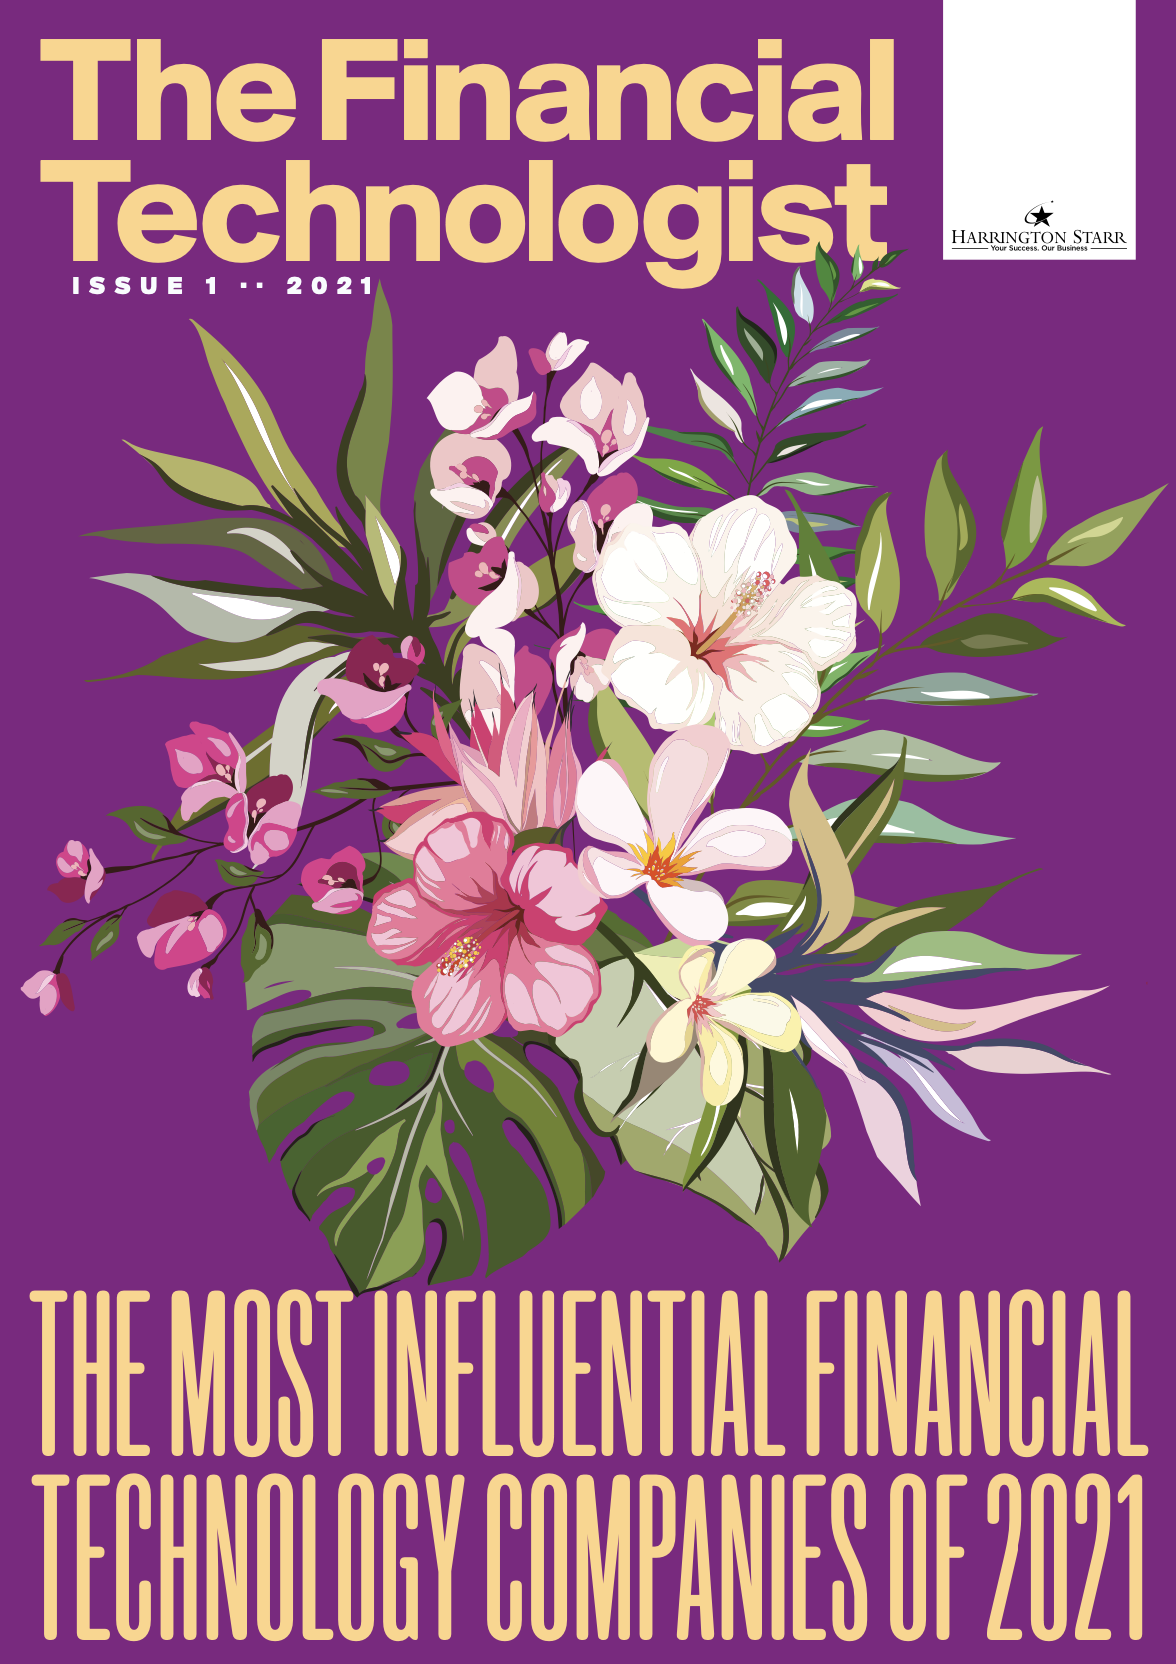 Financial Technologist Magazine 2021 - cover image - Issue 1 - Most Influential Financial Technology Companies